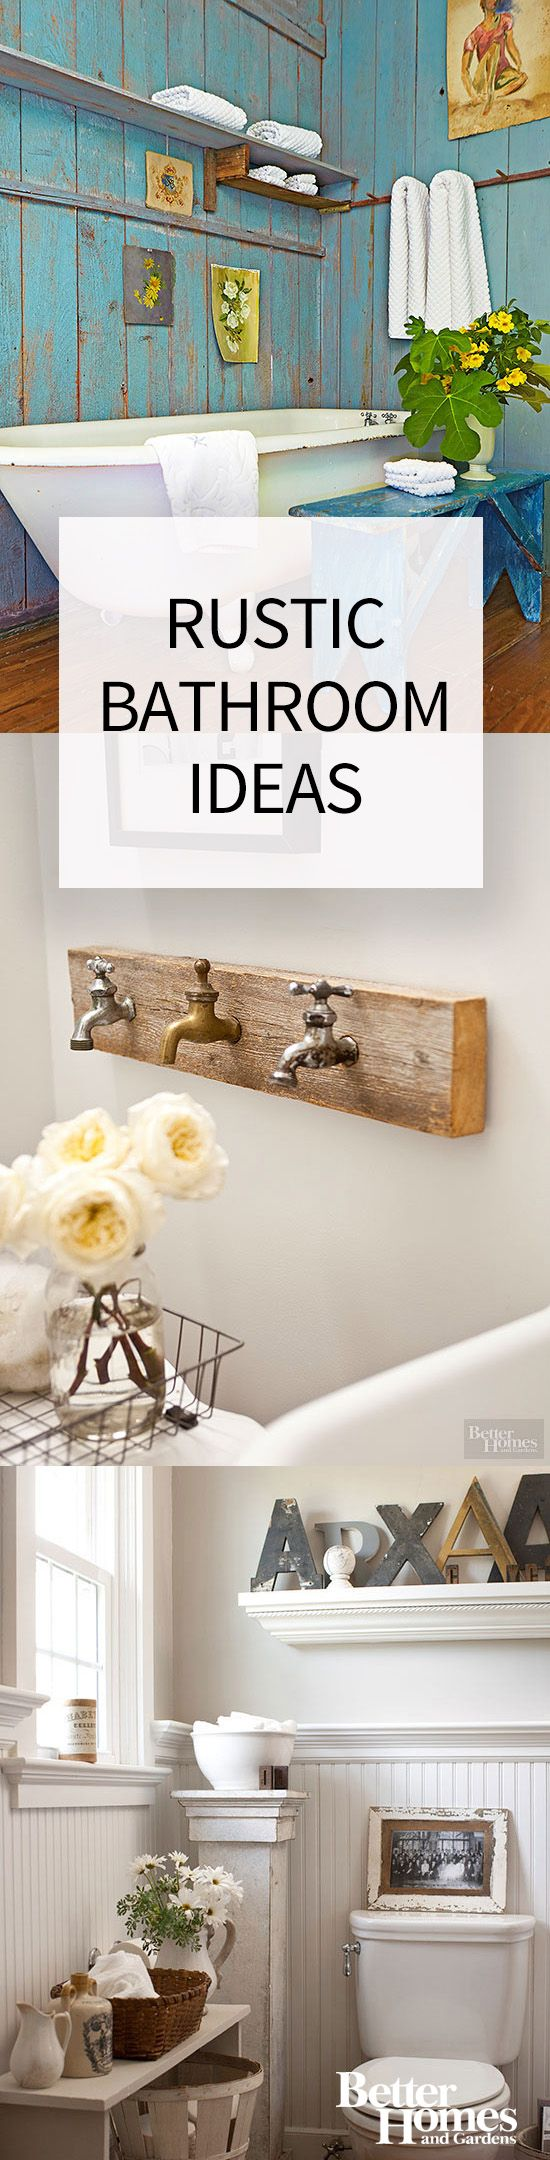 Diy bathroom ideas for small spaces - 17 Best Ideas About Small Rustic Bathrooms On Pinterest Country Bathroom Decorations Rustic Living Decor And Cabin Bathroom Decor